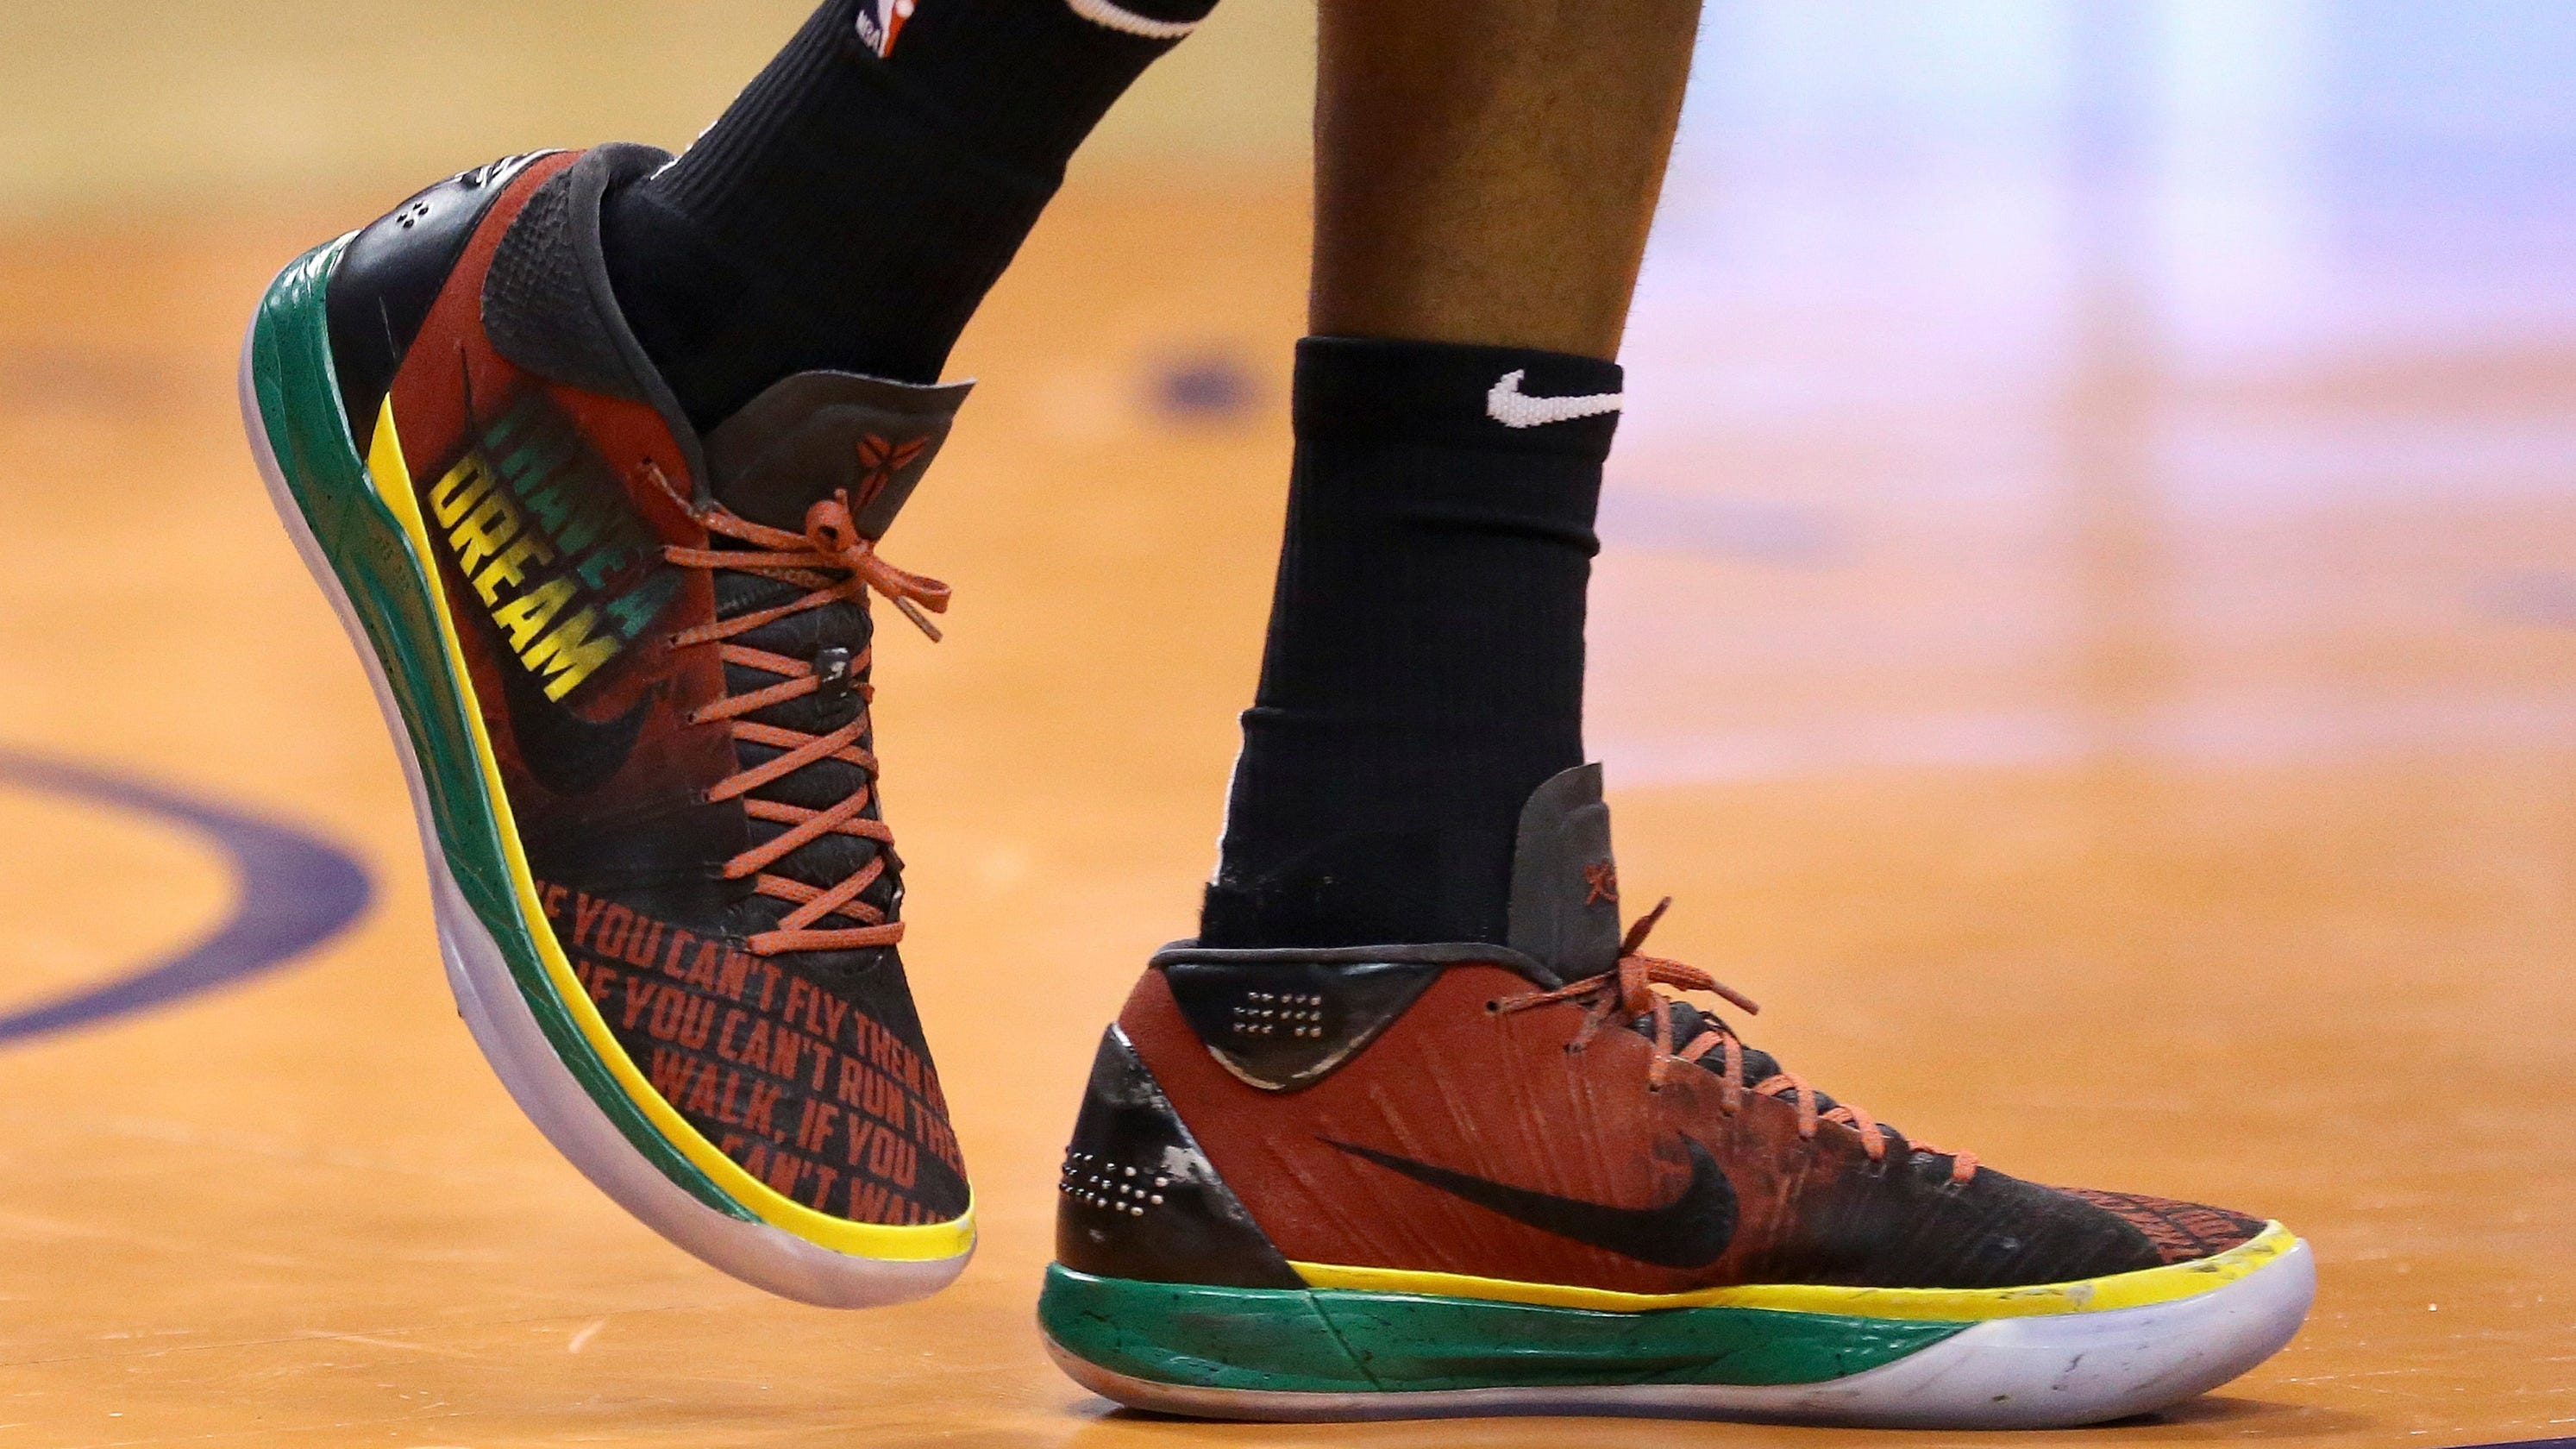 low priced 72708 b6f04 Suns celebrate Black History Month with custom designed shoes featuring  civil rights icons